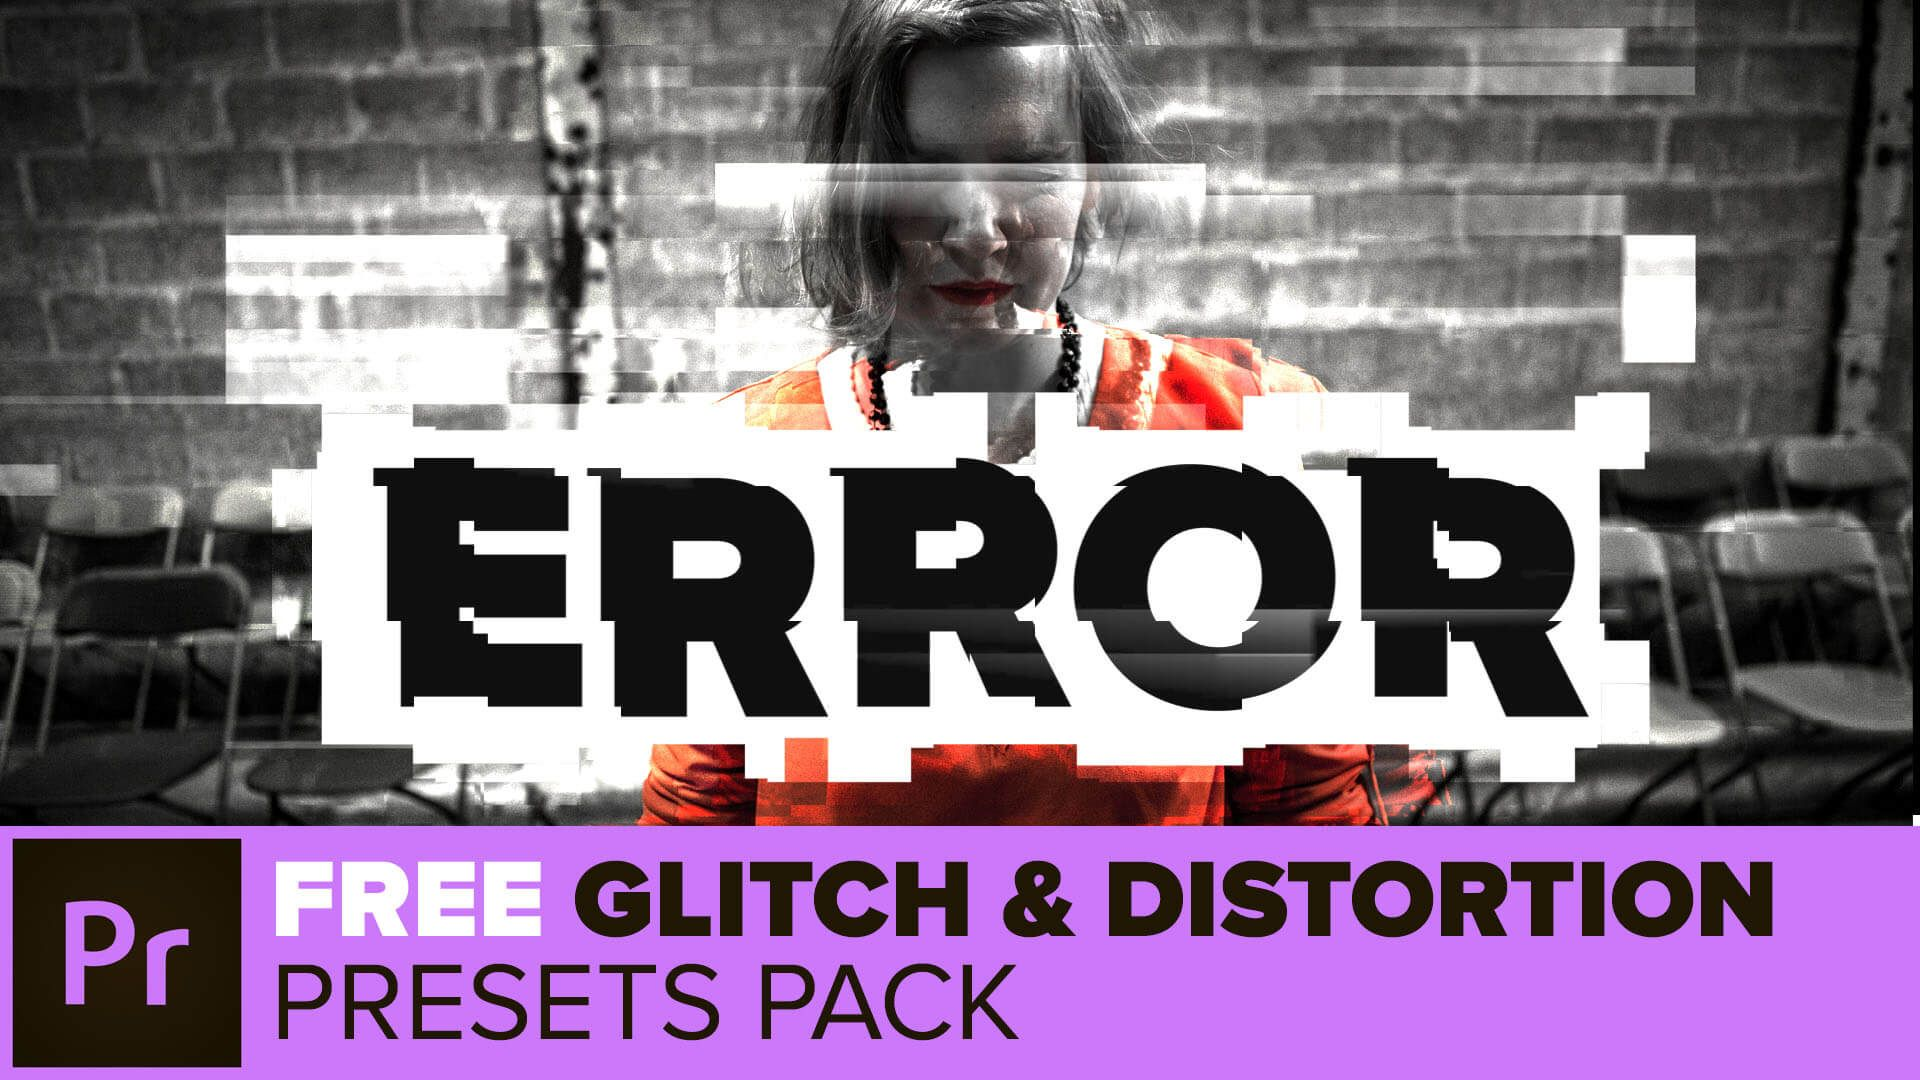 Free Glitch and Distortion effects presets for Adobe Premiere Pro